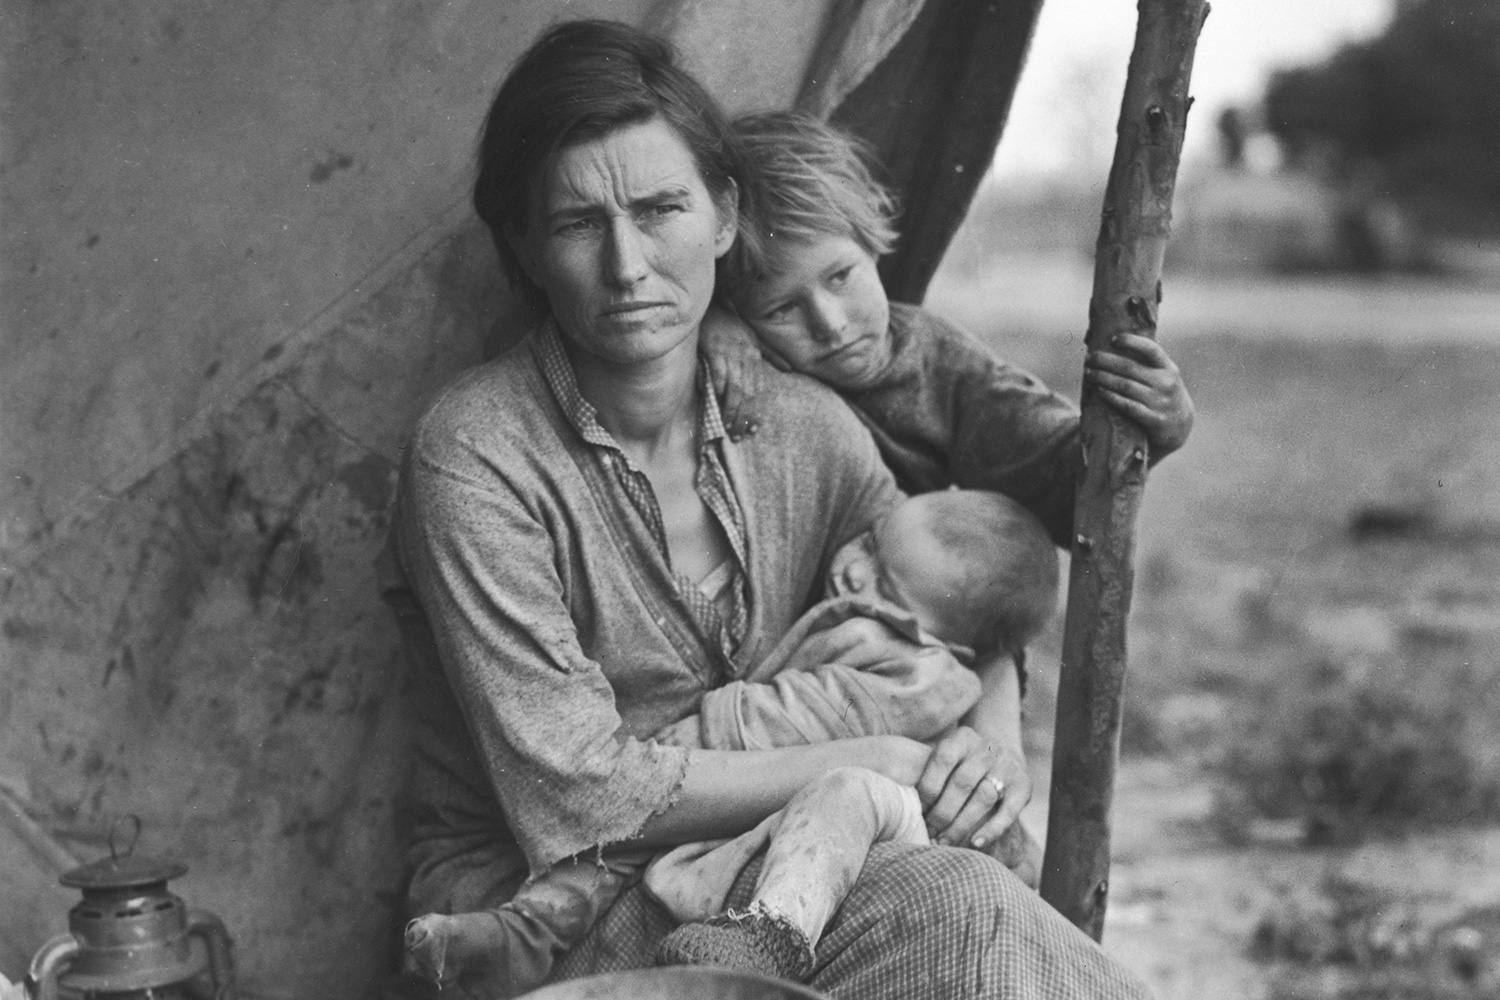 The struggling mother of a migrant family at a temporary camp in California during the Great Depression